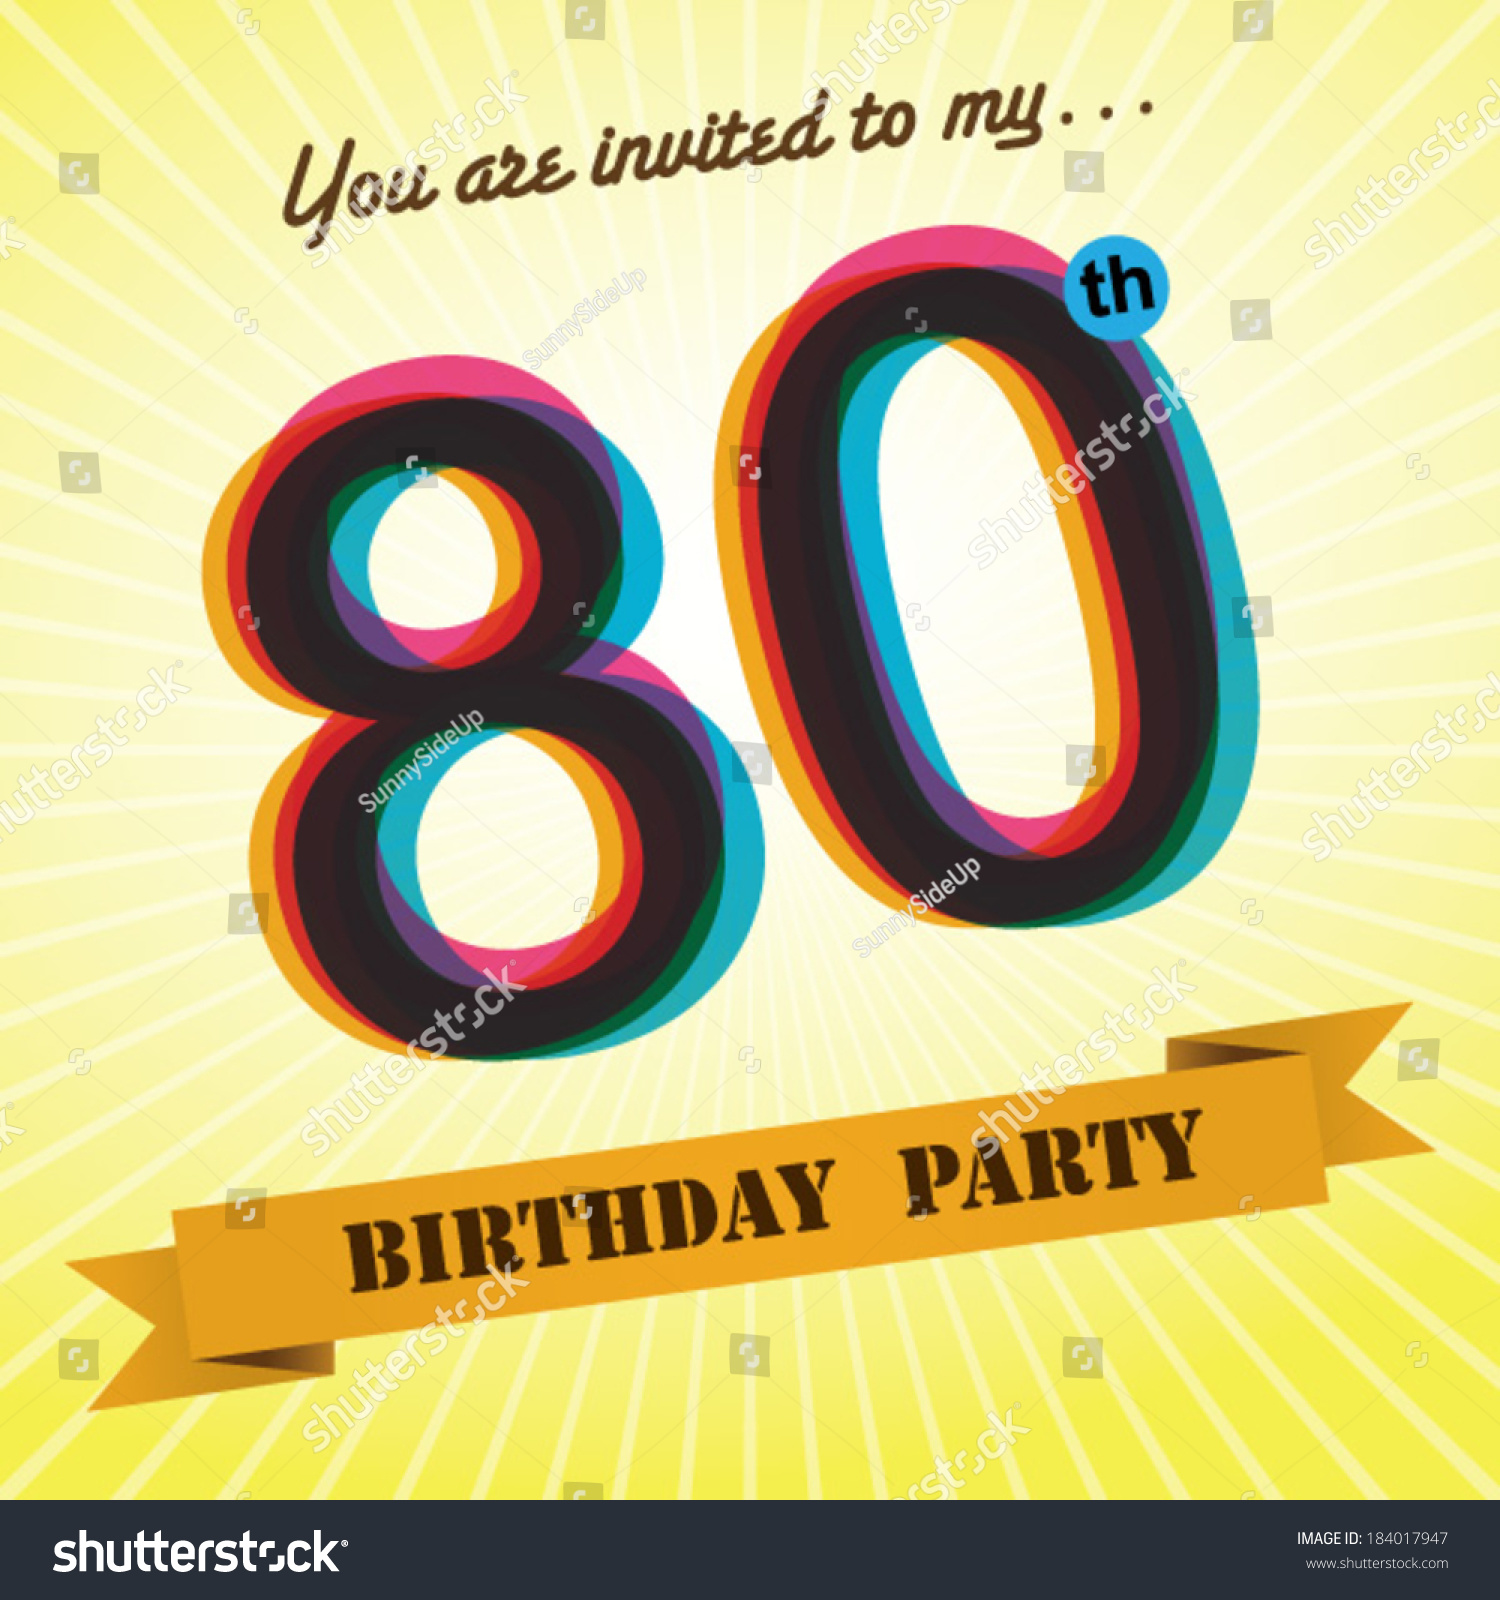 80th Birthday Party Invite Template Design Stock Vector (Royalty Free)  184017947